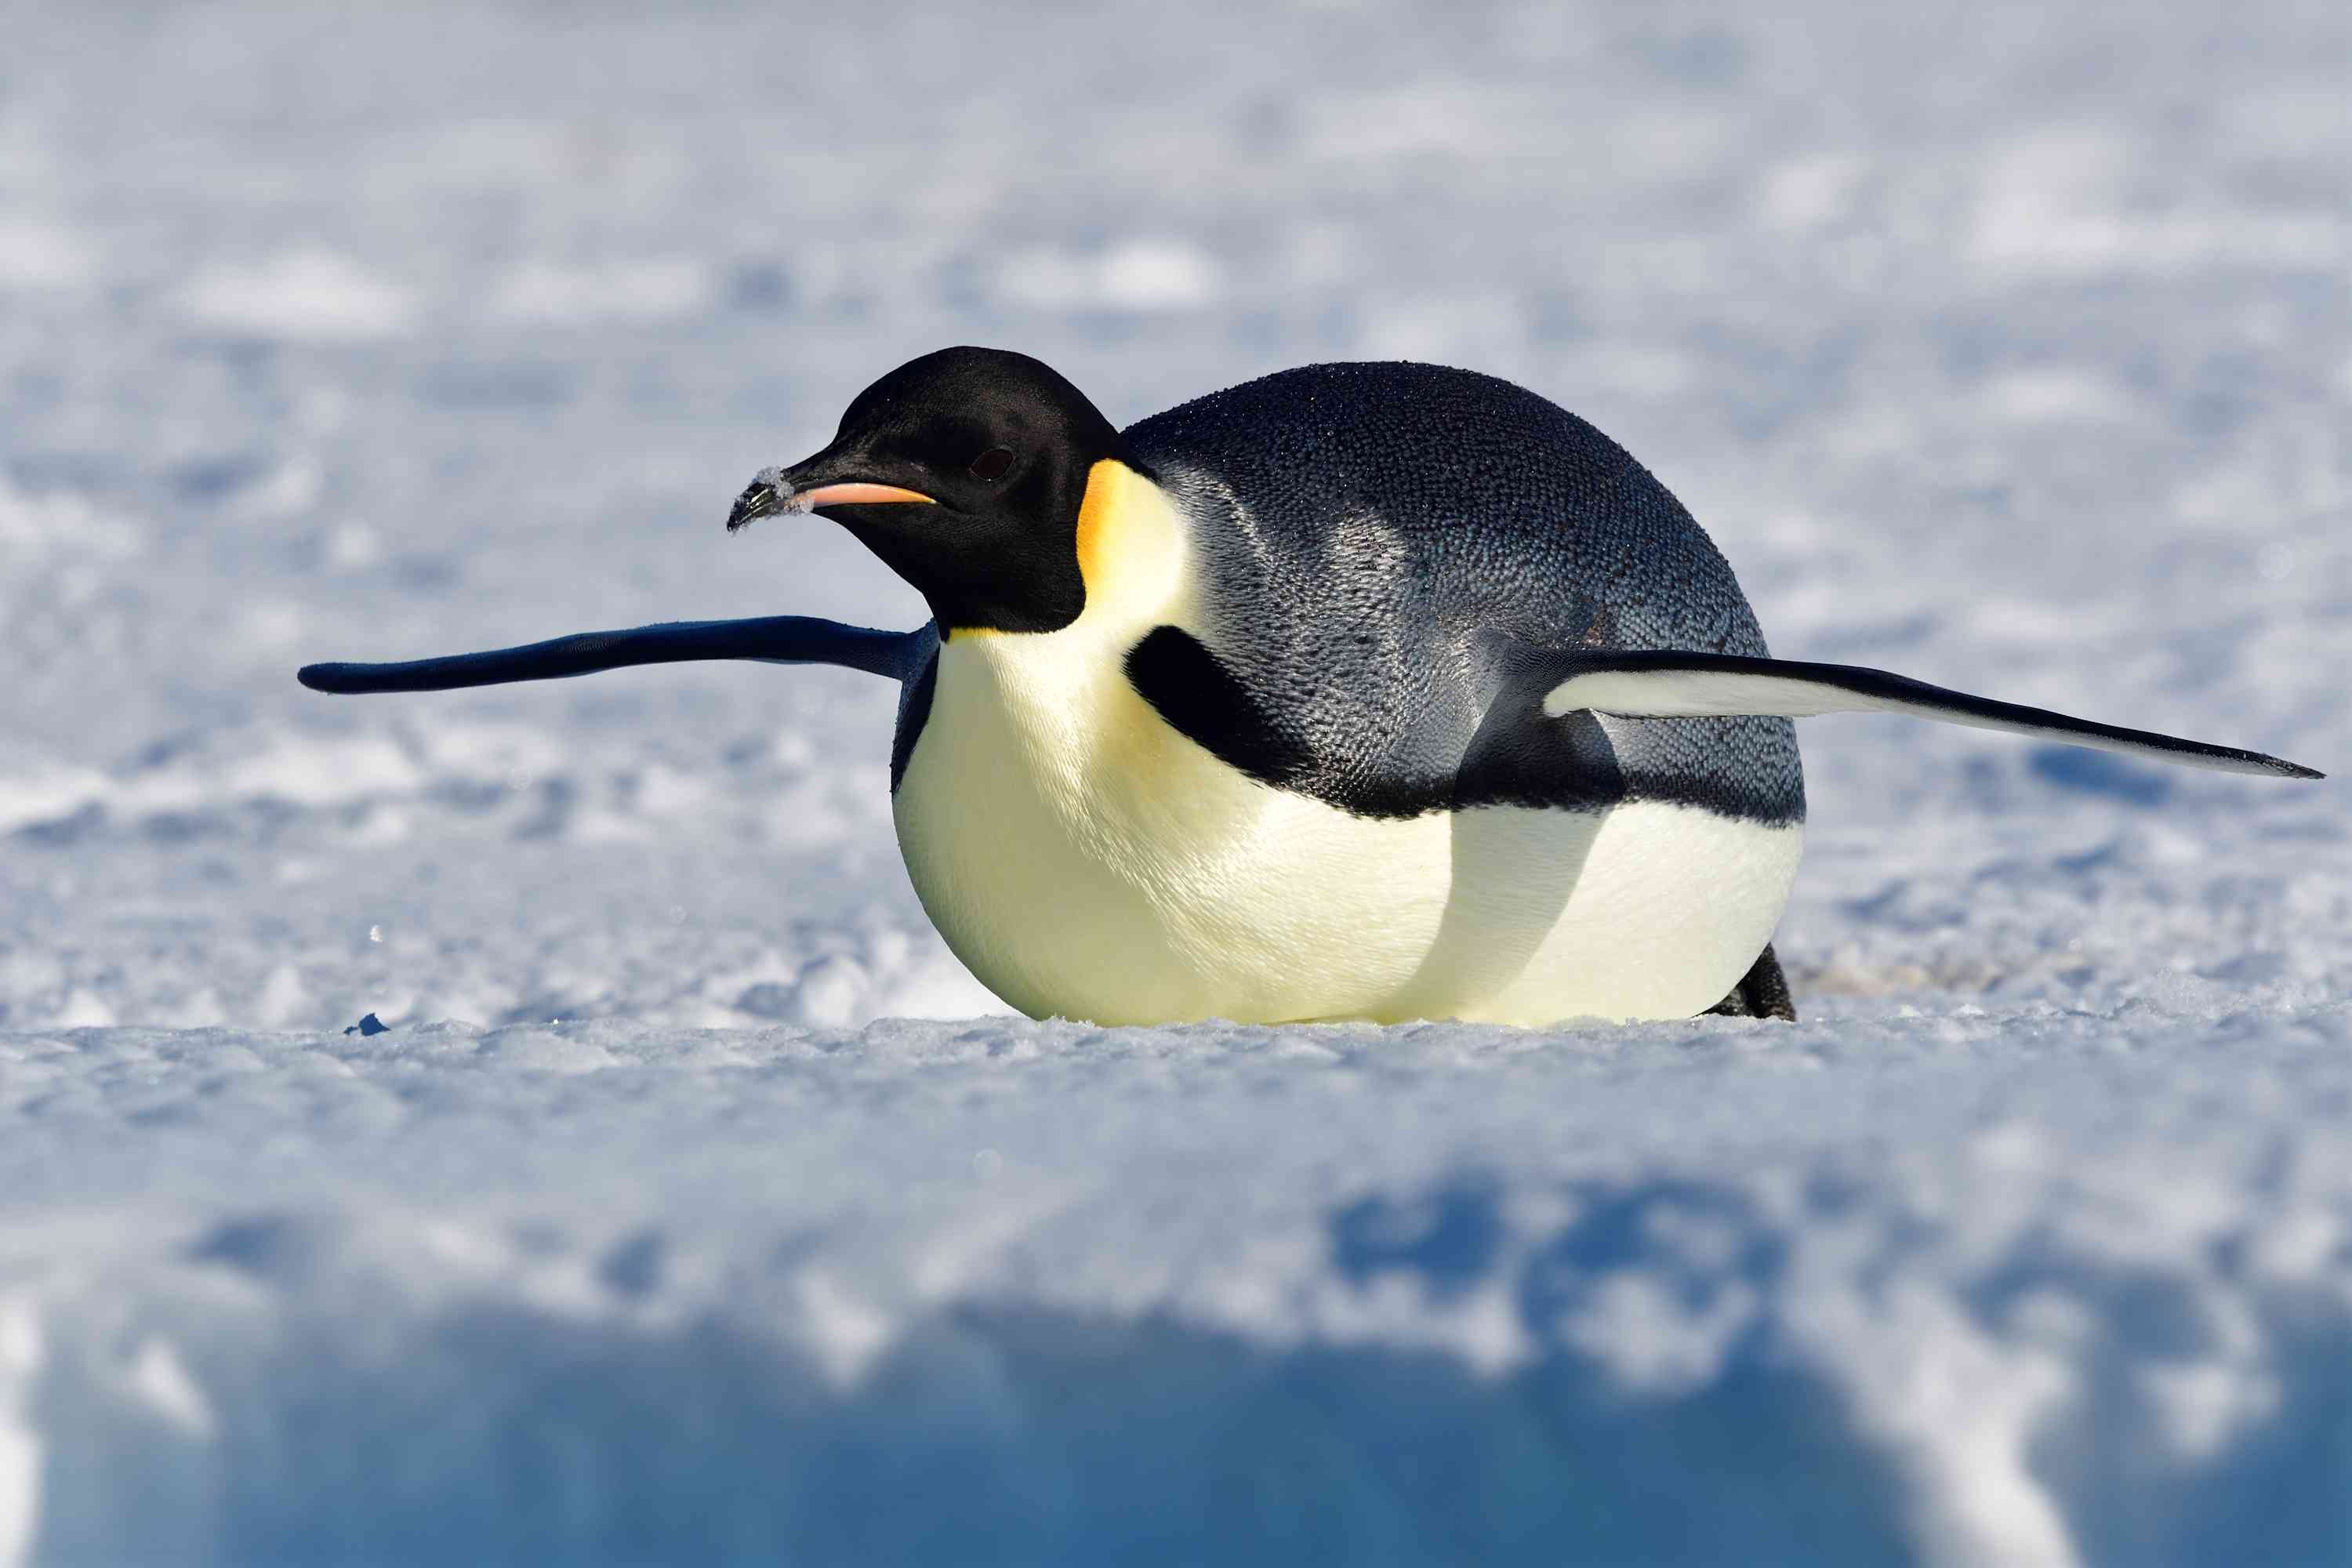 On land, emperor penguins either waddle or slide on their bellies.